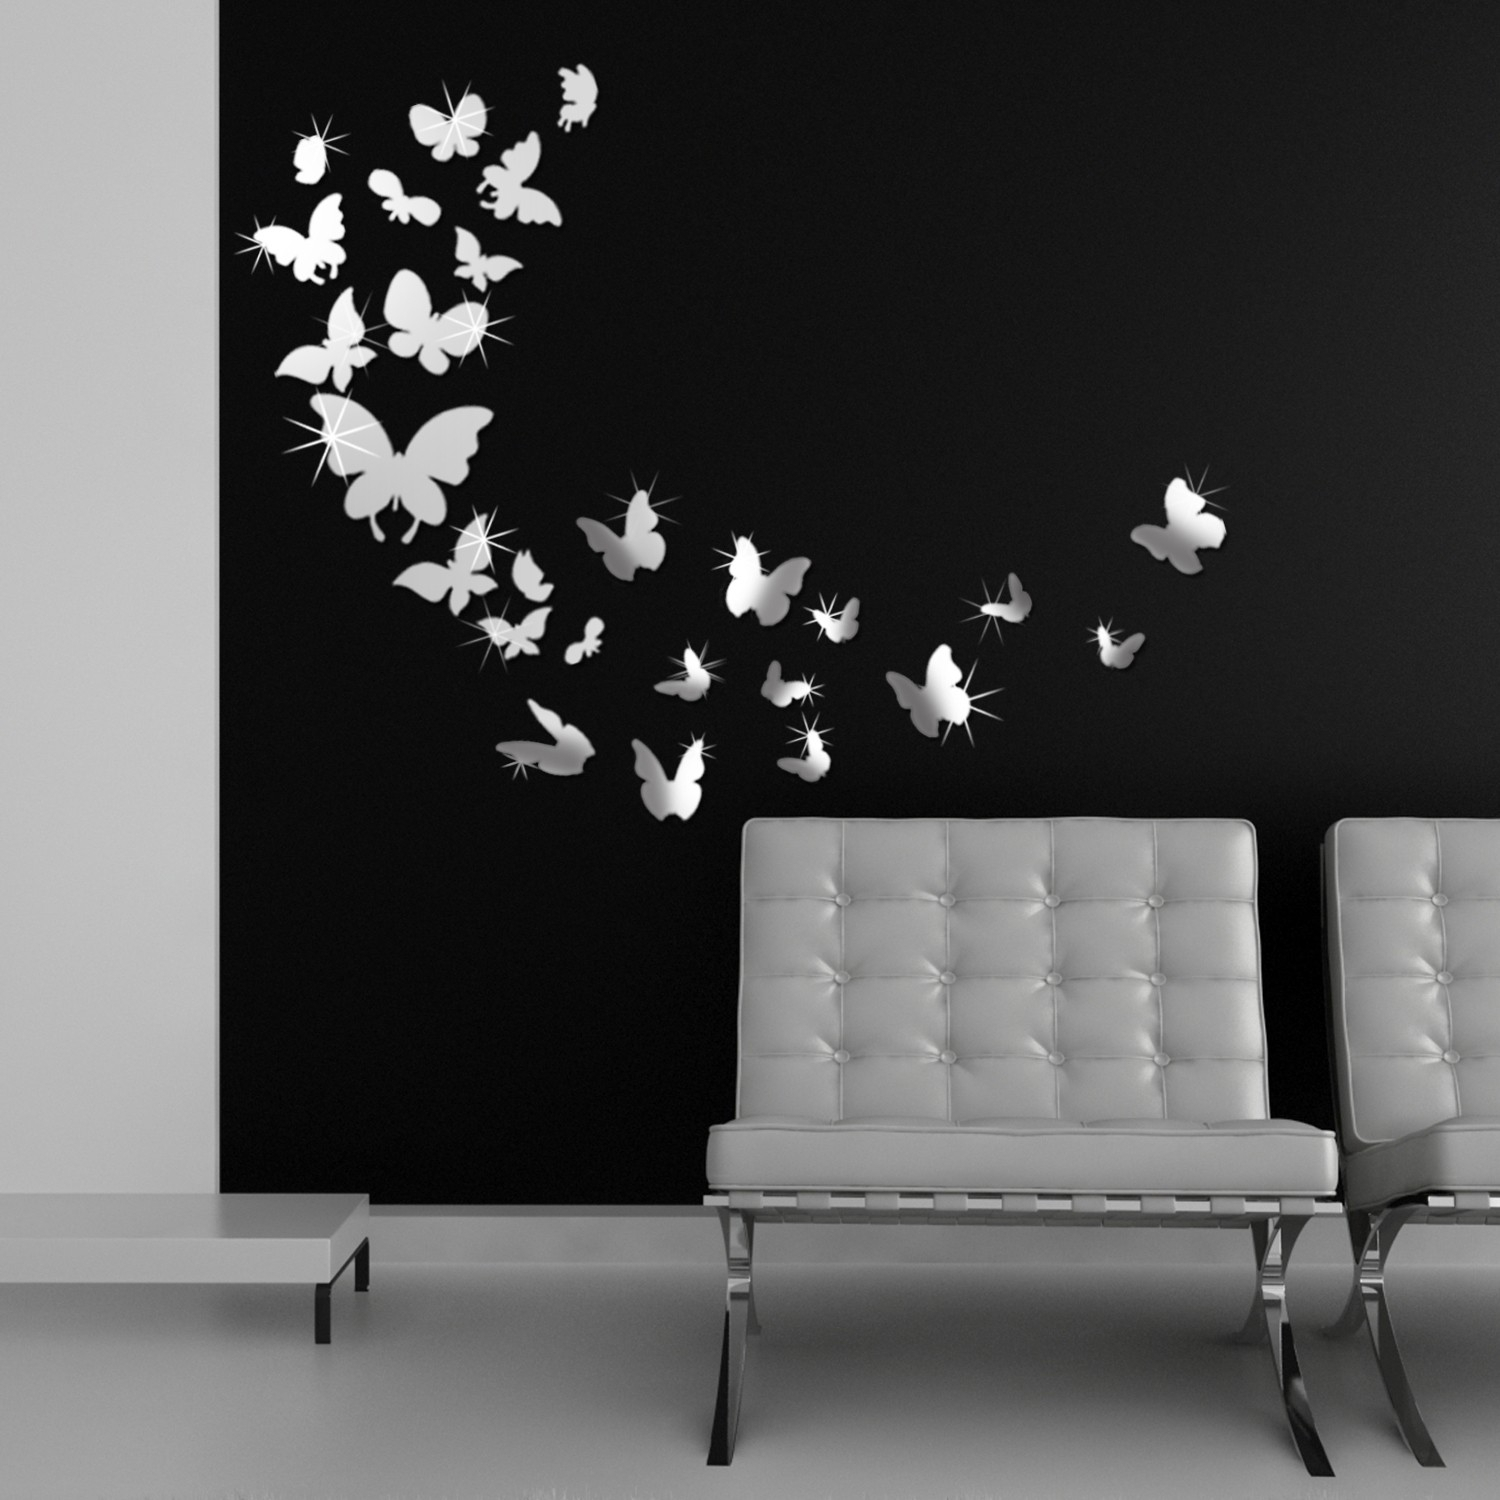 Black Wall Art Popular Black Wall Art – Wall Decoration Ideas Pertaining To Most Recent Black Wall Art (View 2 of 20)